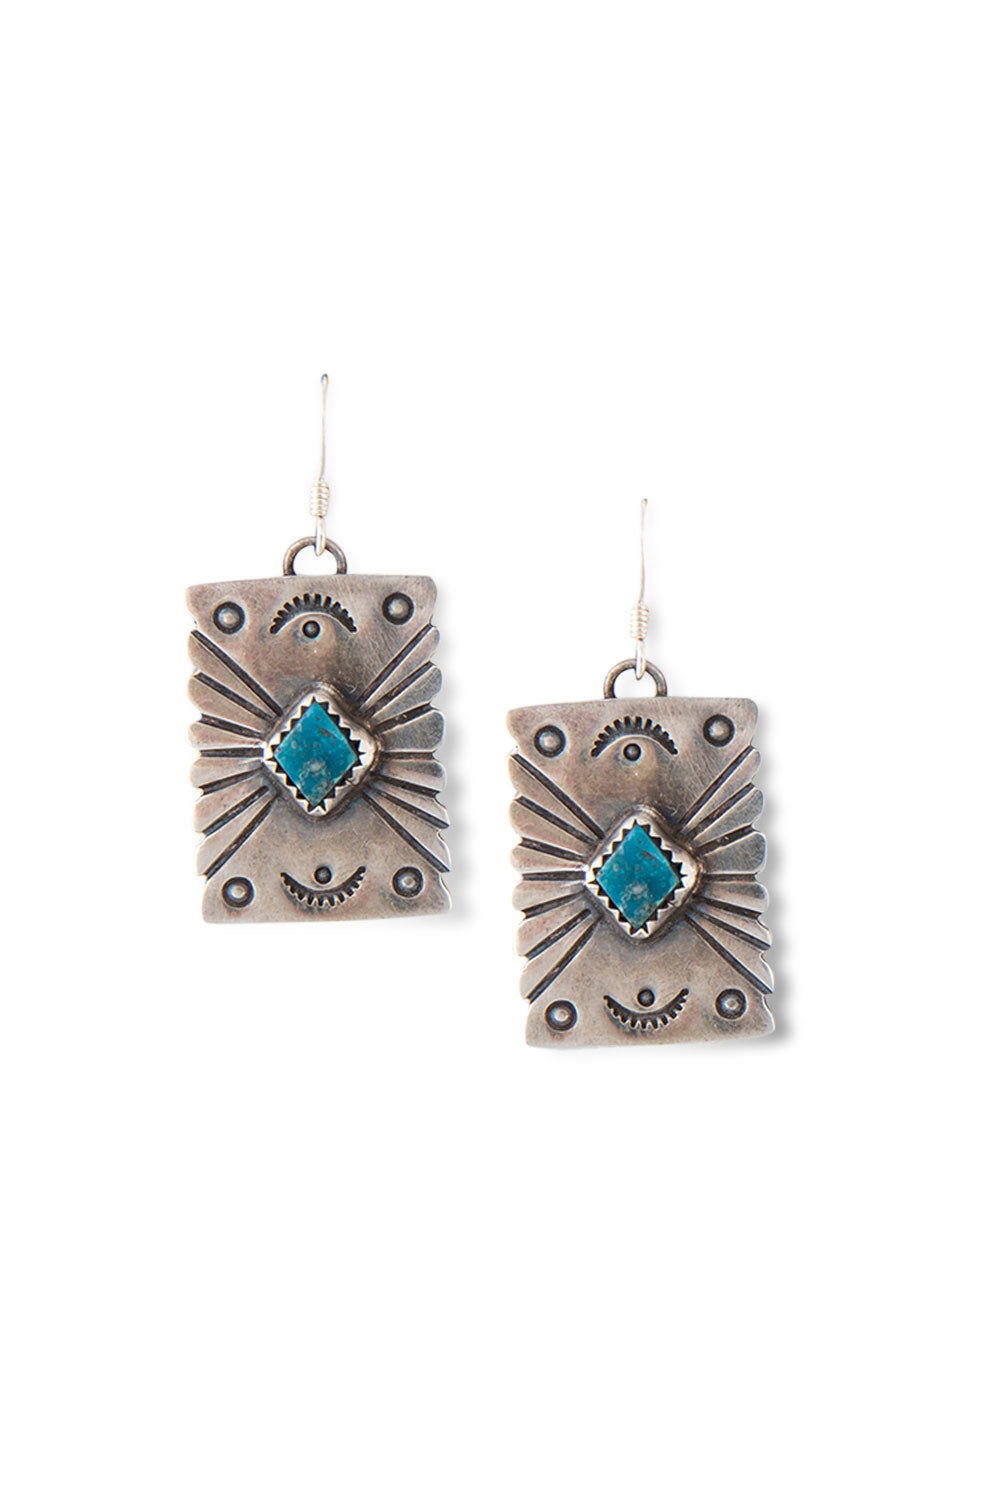 Earrings, Concho, Turquoise, Hallmark, 407